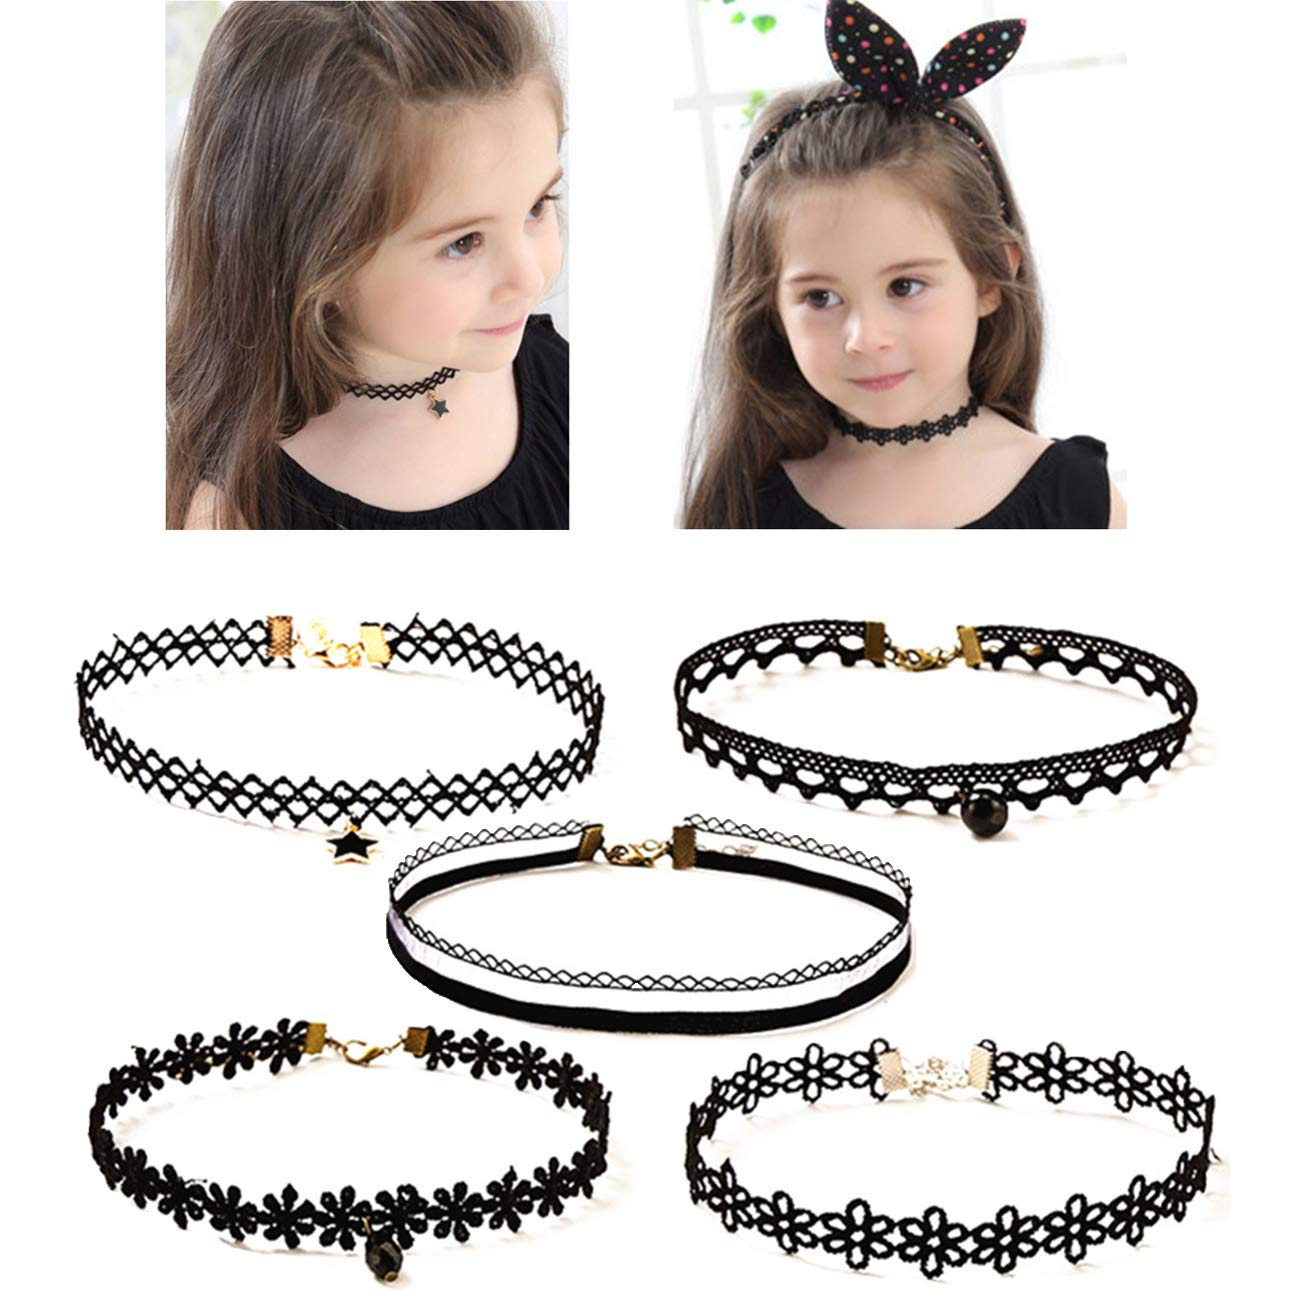 OCTCHOCO 5Pcs Choker Necklace for Girls Lace Choker Gothic Little Princess Fashion Jewelry